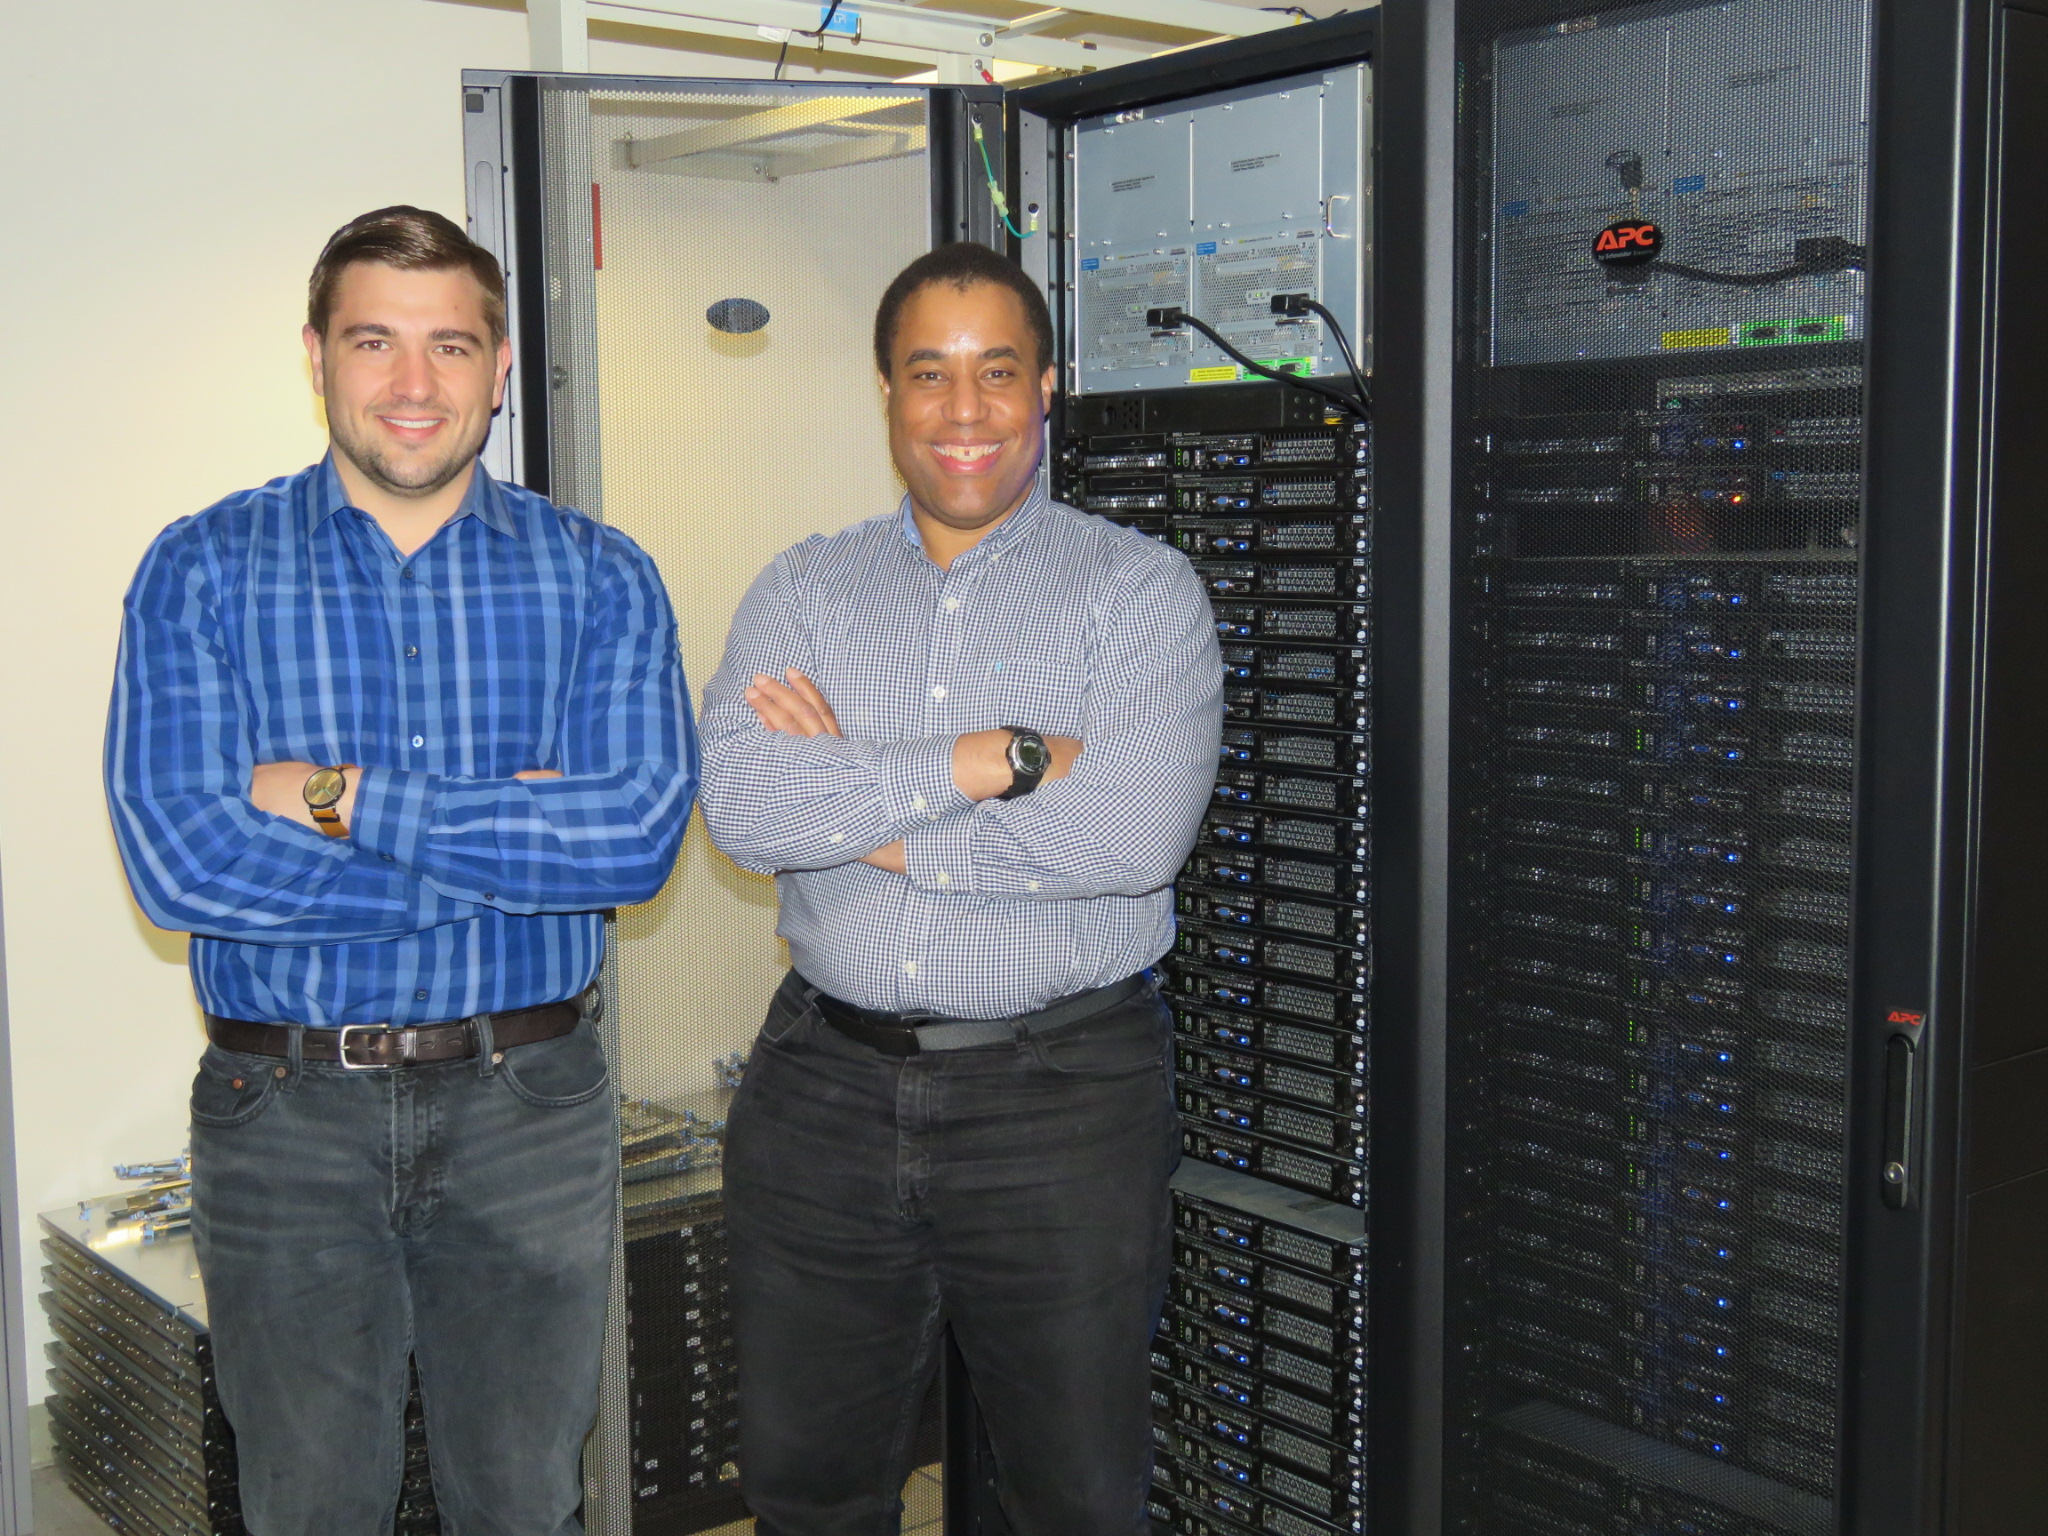 Taner (left) and Anthony (right) at UC Berkeley next to their compute cluster